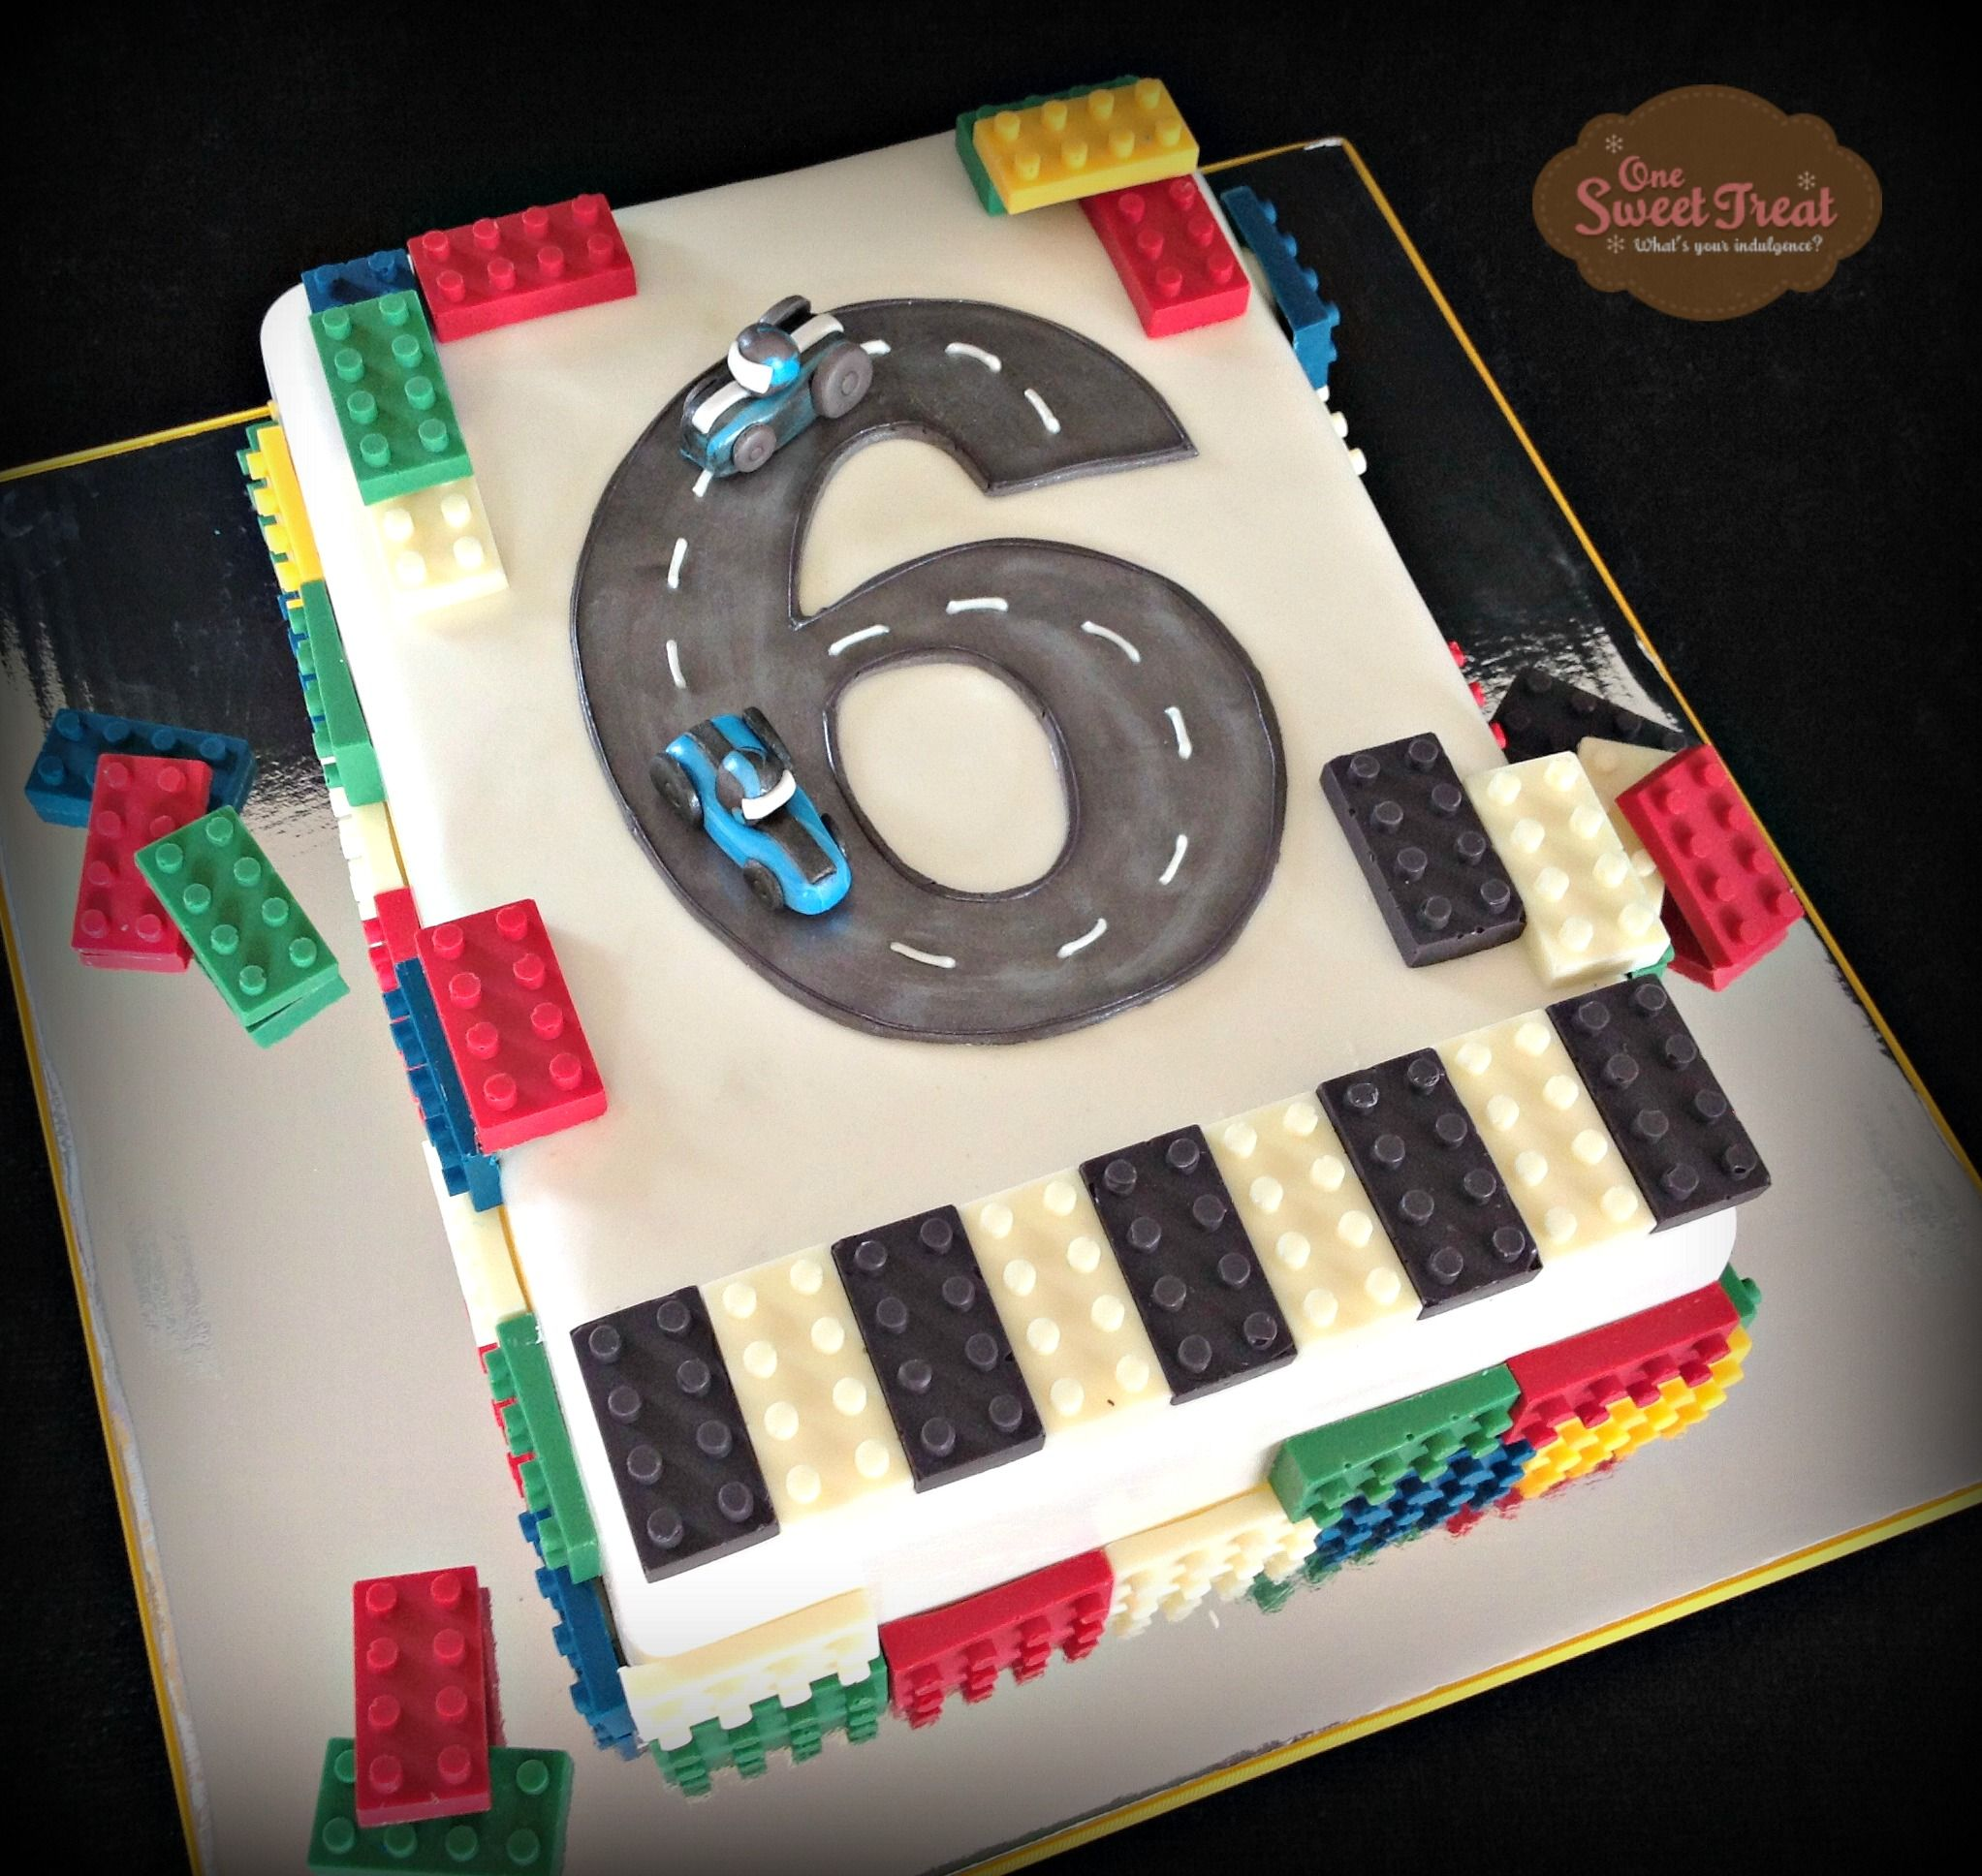 Tremendous Lego Cake Lego Race Cars Cake More At Onesweettreat Com Funny Birthday Cards Online Elaedamsfinfo